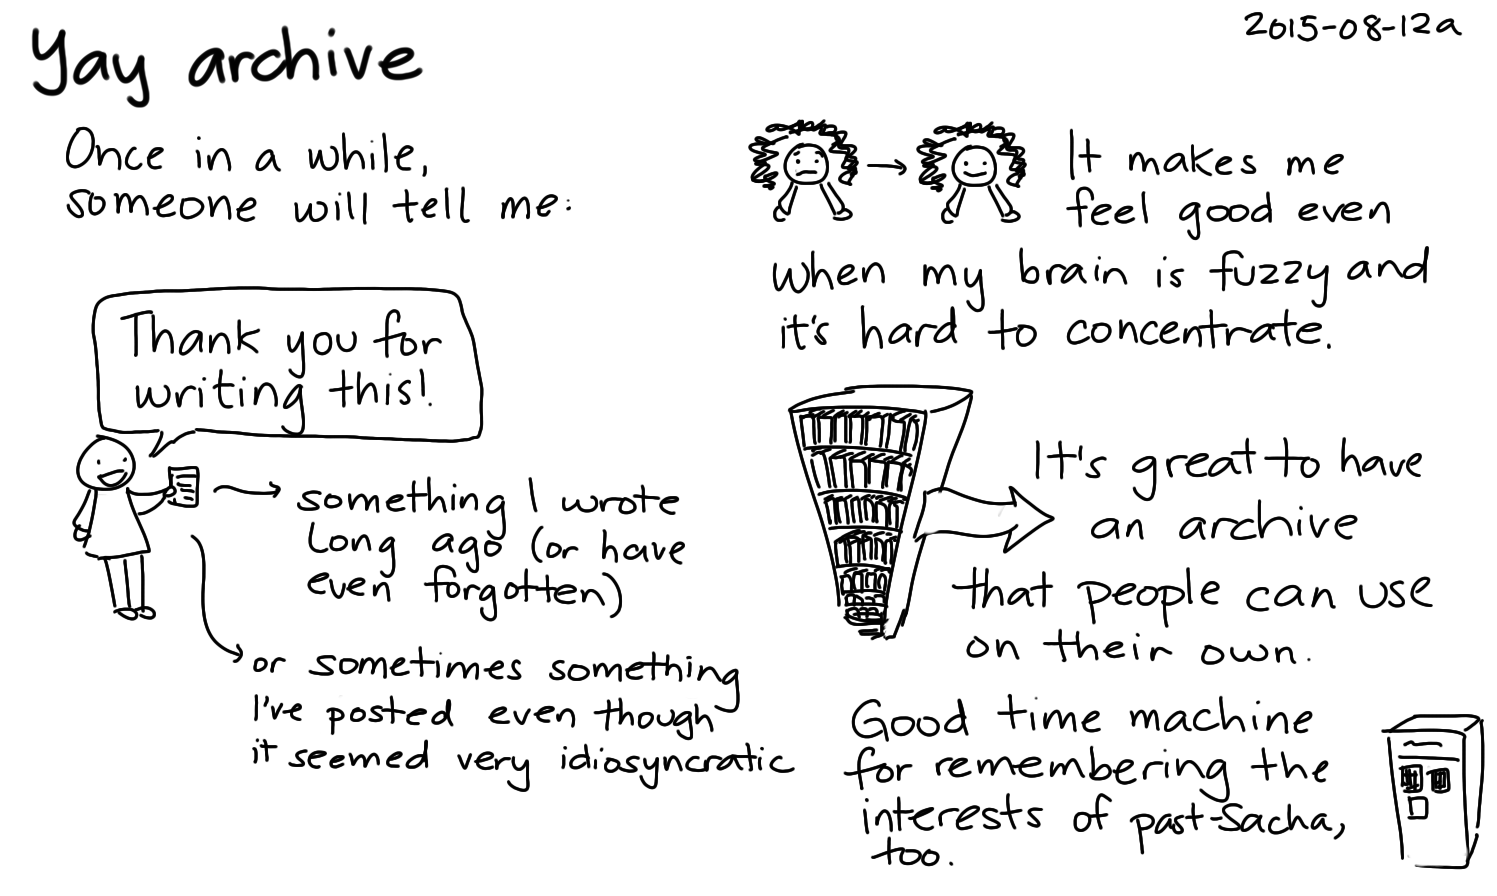 2015-08-12a Yay archive -- index card #writing #blogging.png